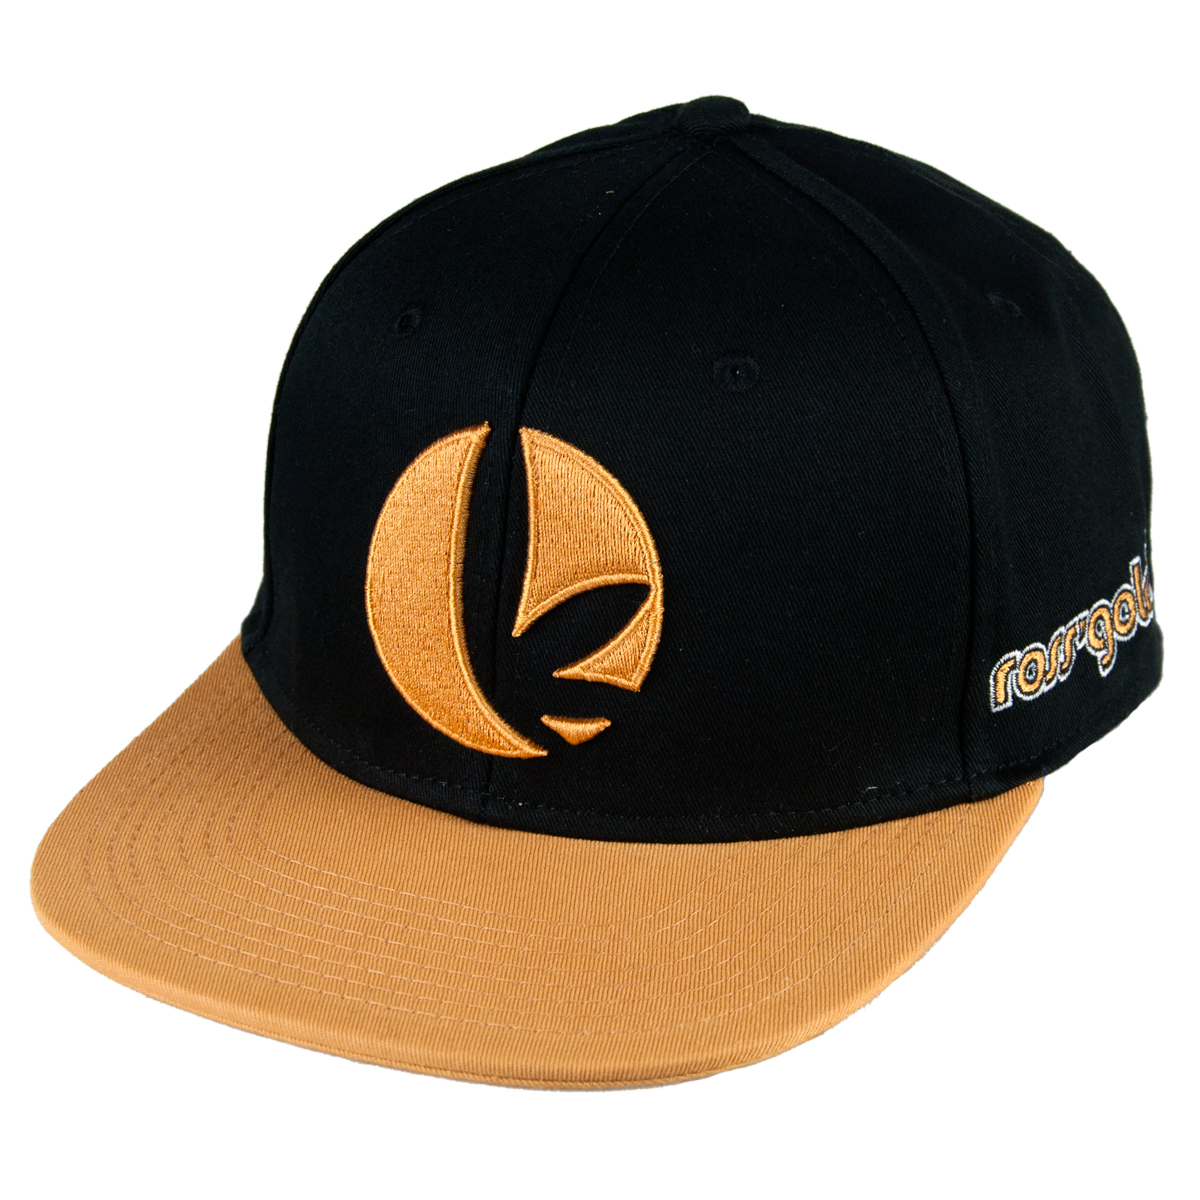 Ross' Gold marijuana hat wholesale